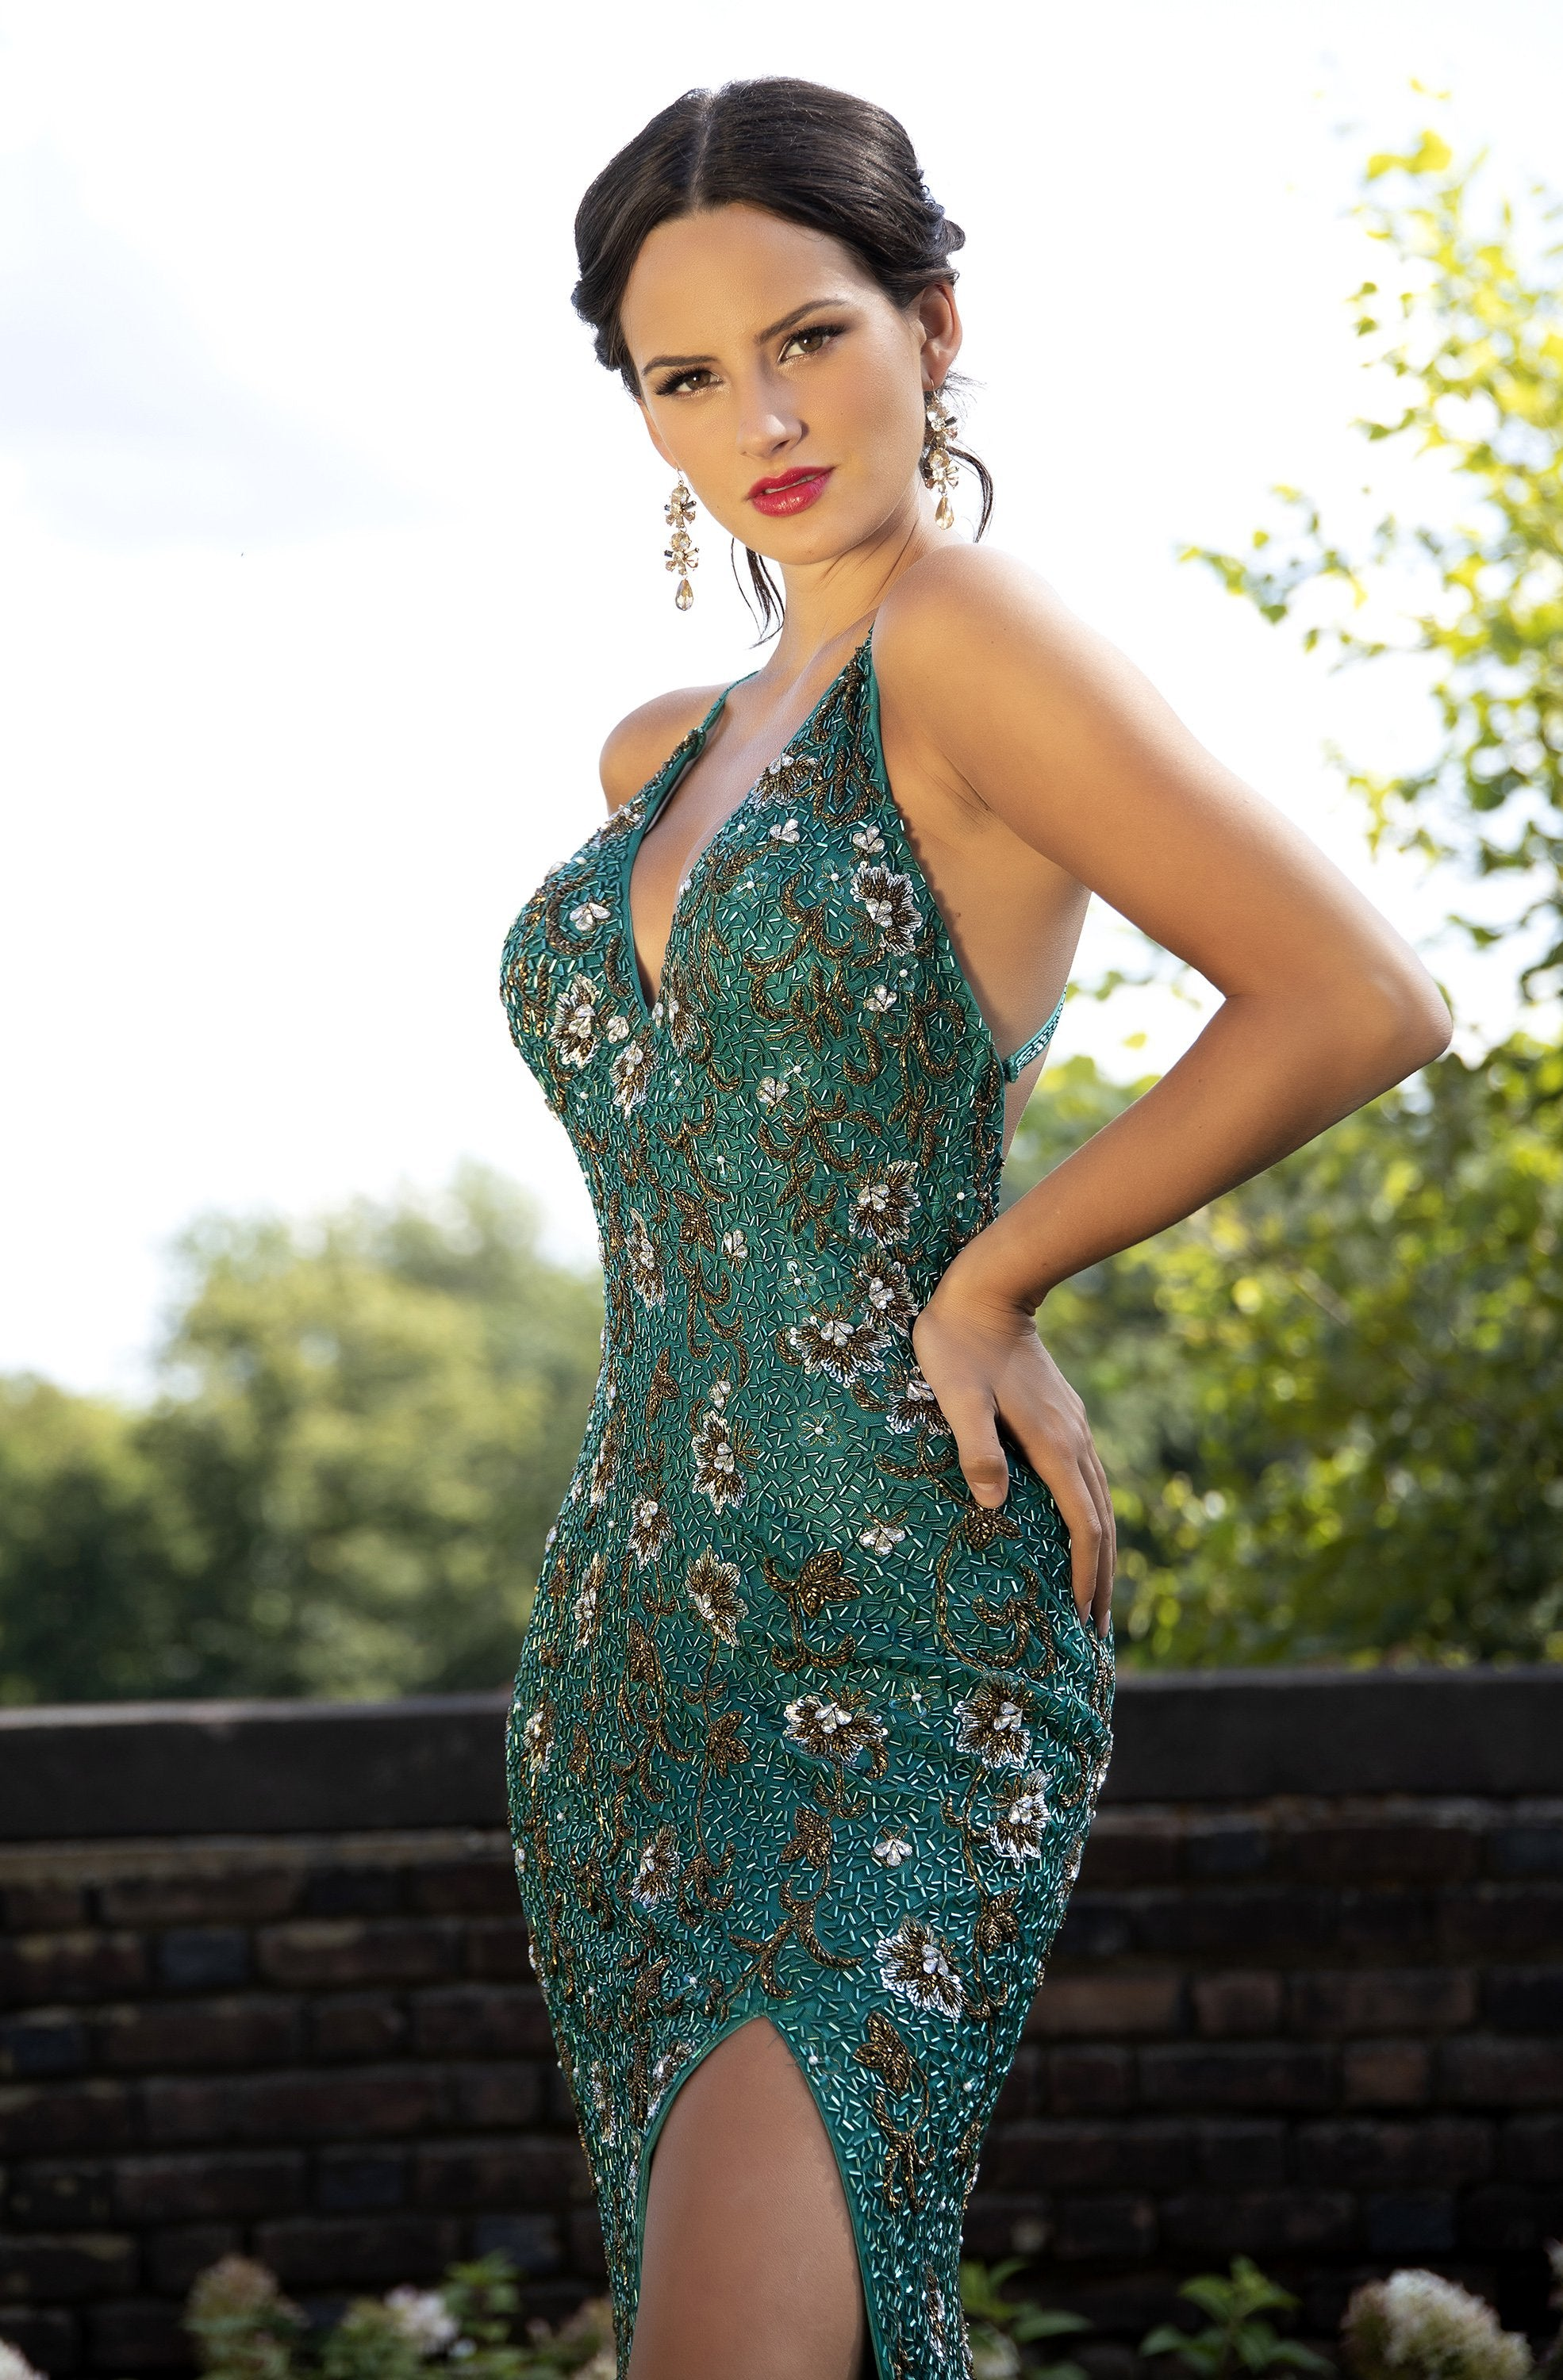 Primavera Couture - 3229 Floral Beaded High Slit Long Gown In Blue and Green